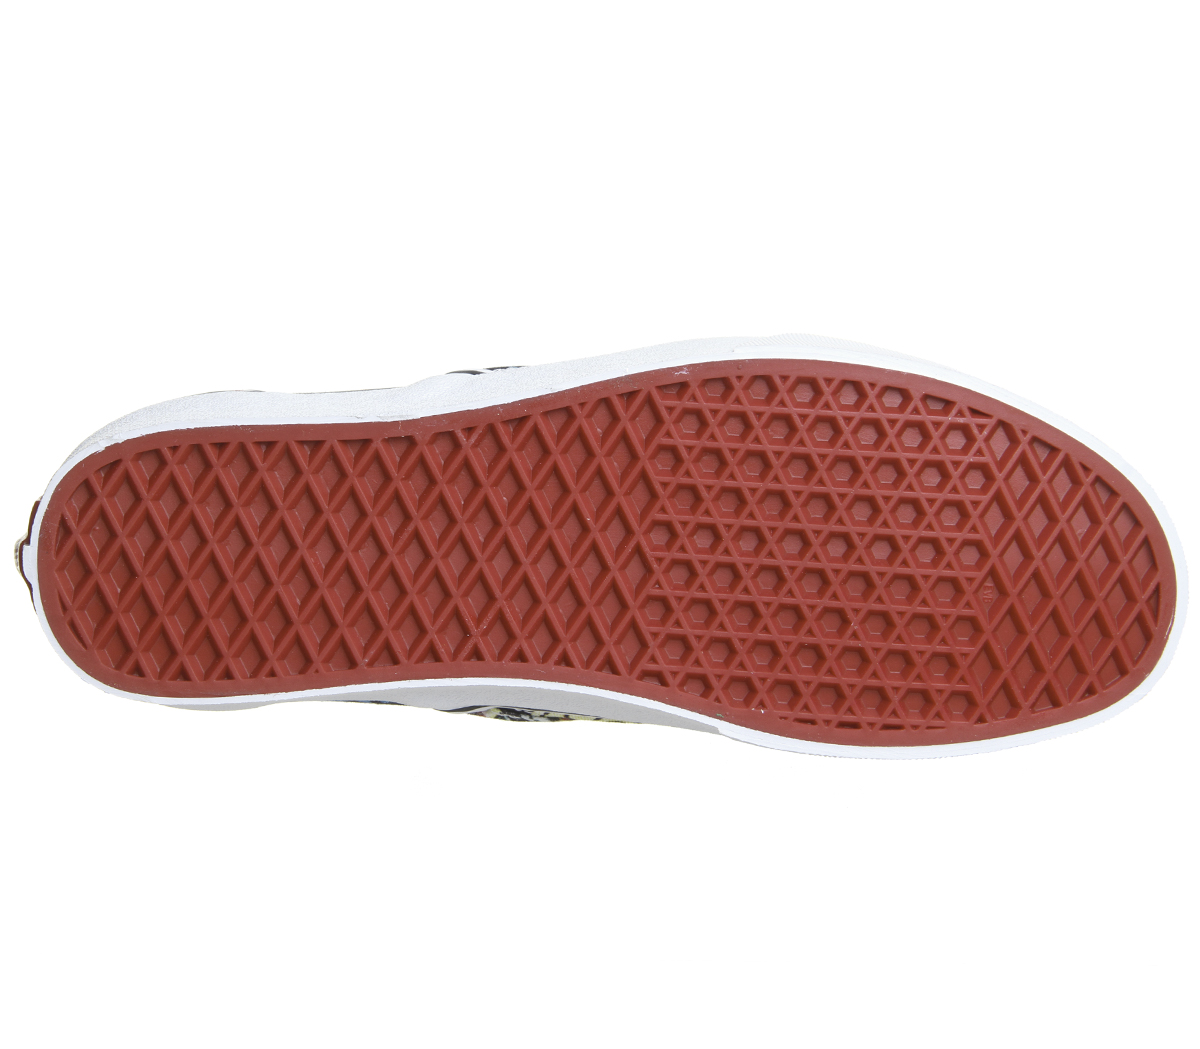 Mens Vans Vans Classic On Slip On Classic Trainers SPIDERMAN BLACK MARVEL Trainers Shoes 6a9eaf